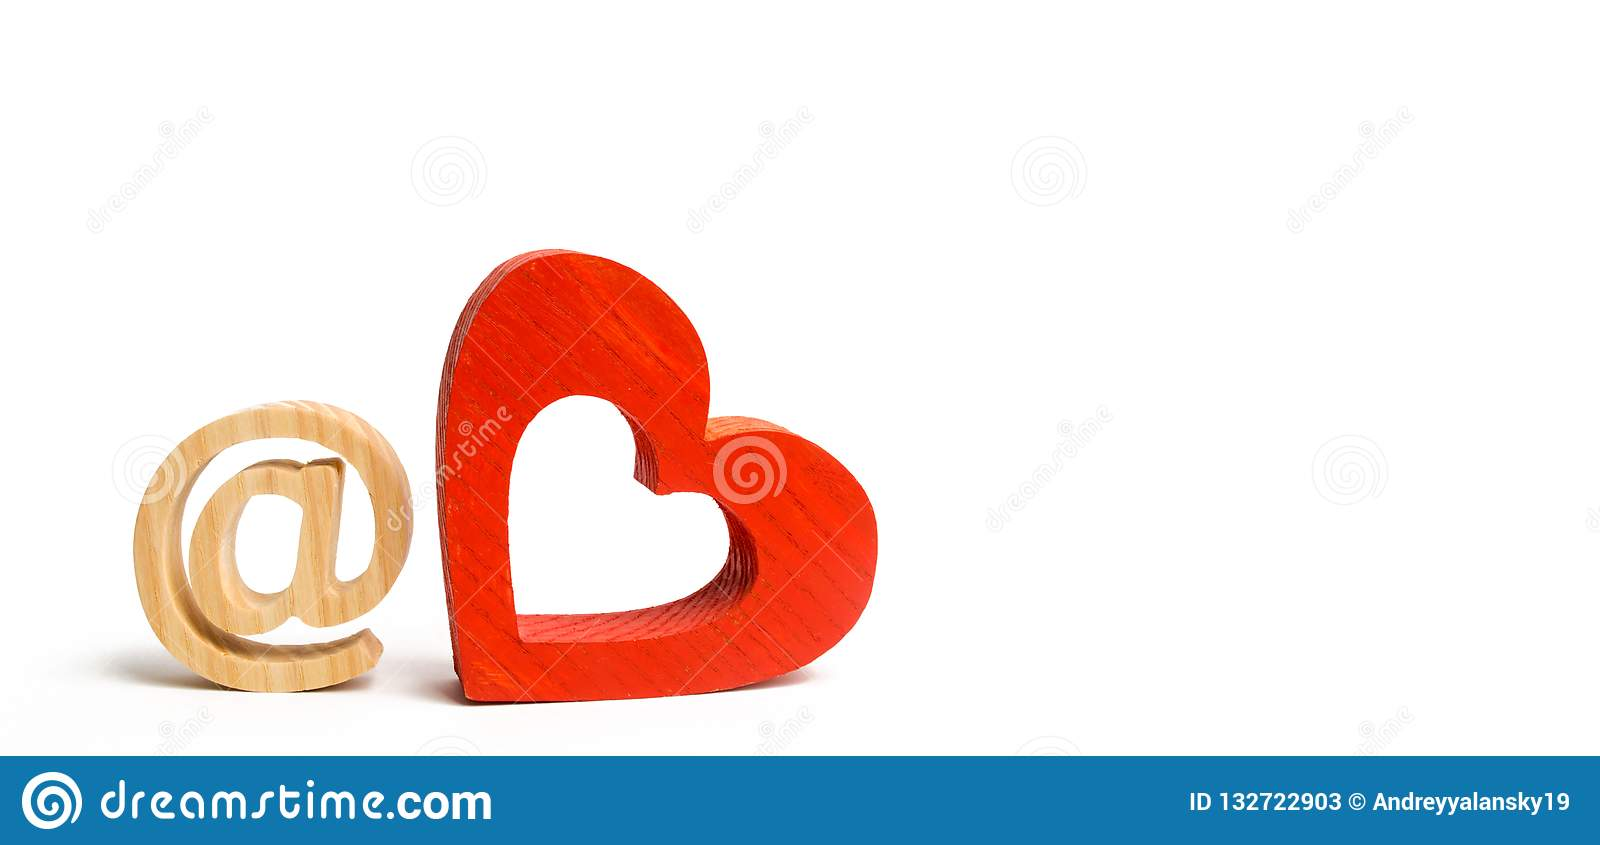 Email icon and red wooden heart. Internet dating concept. Love online. Search for the second half. Familiarity in social networks